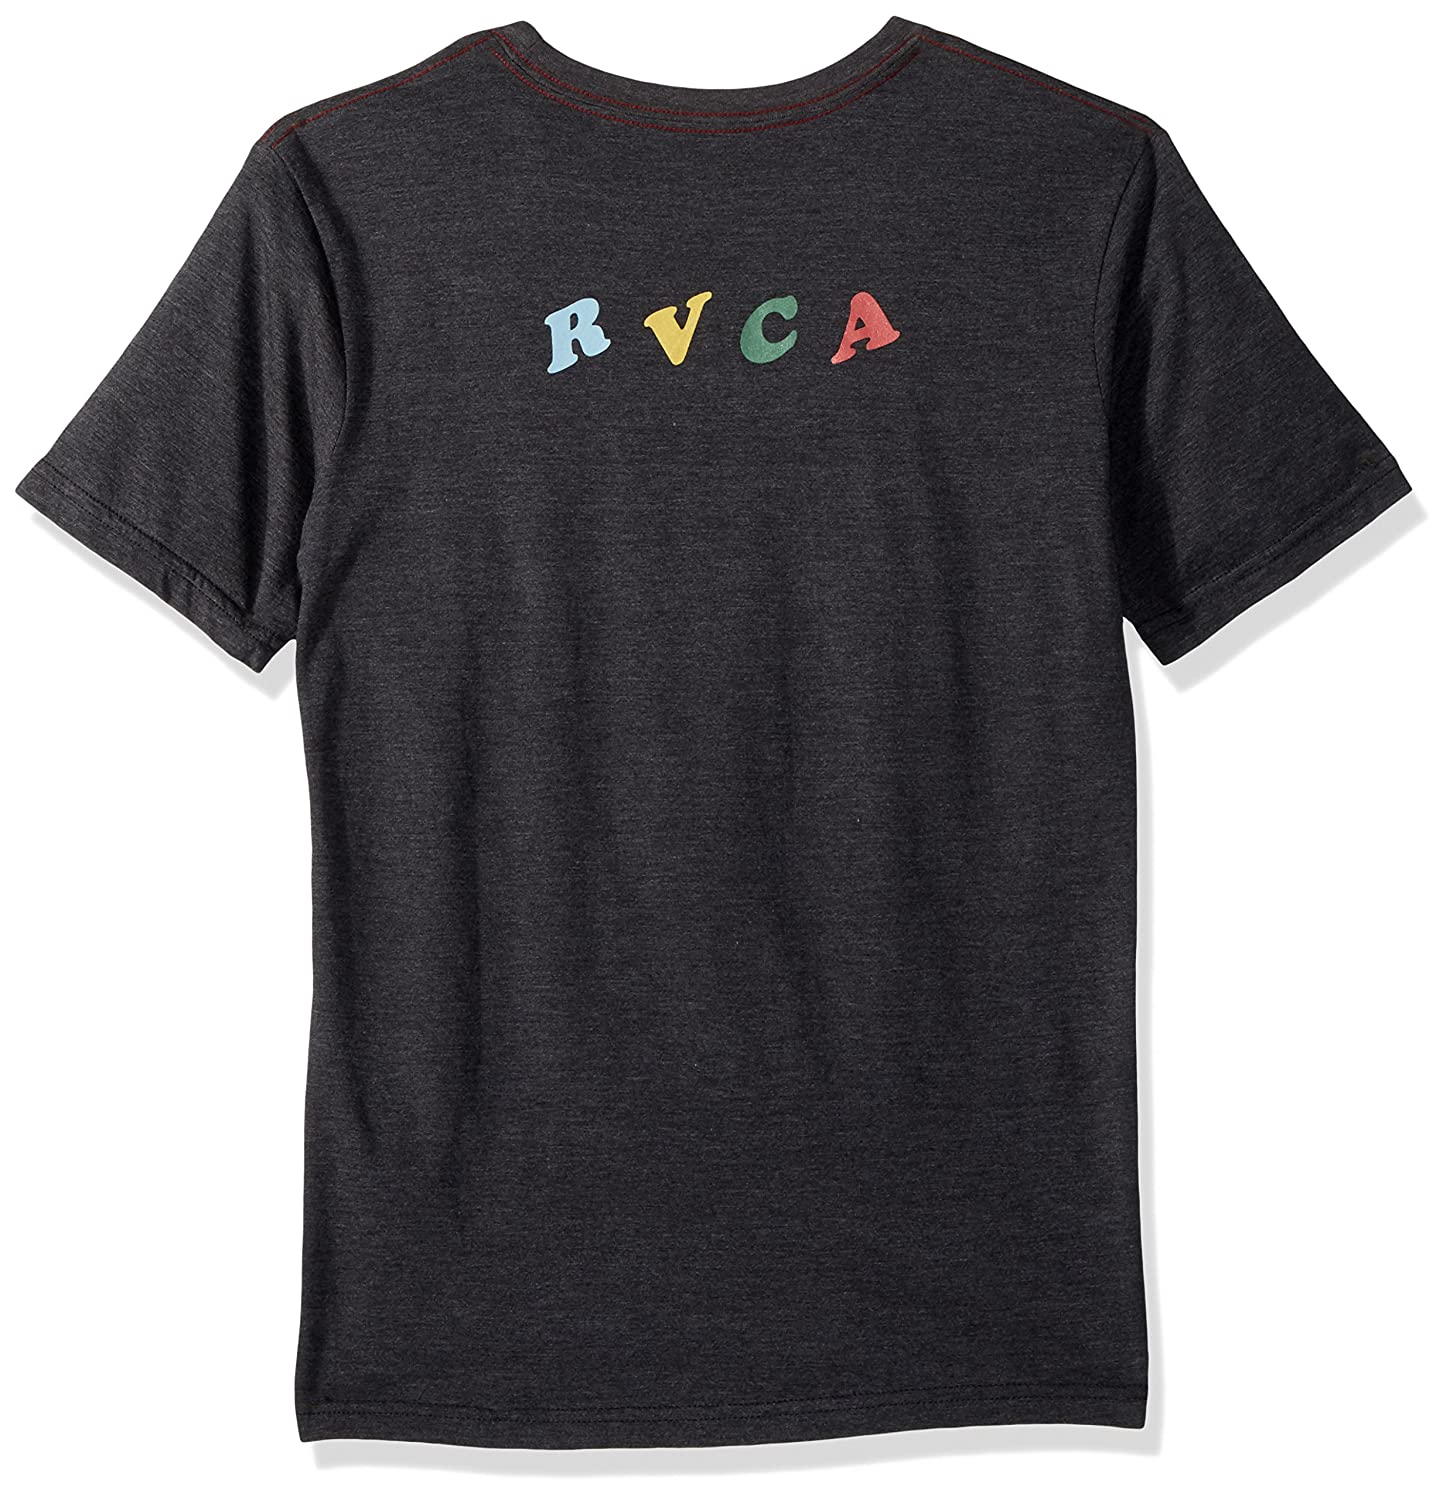 RVCA Boys Big Dolphin Club Tee